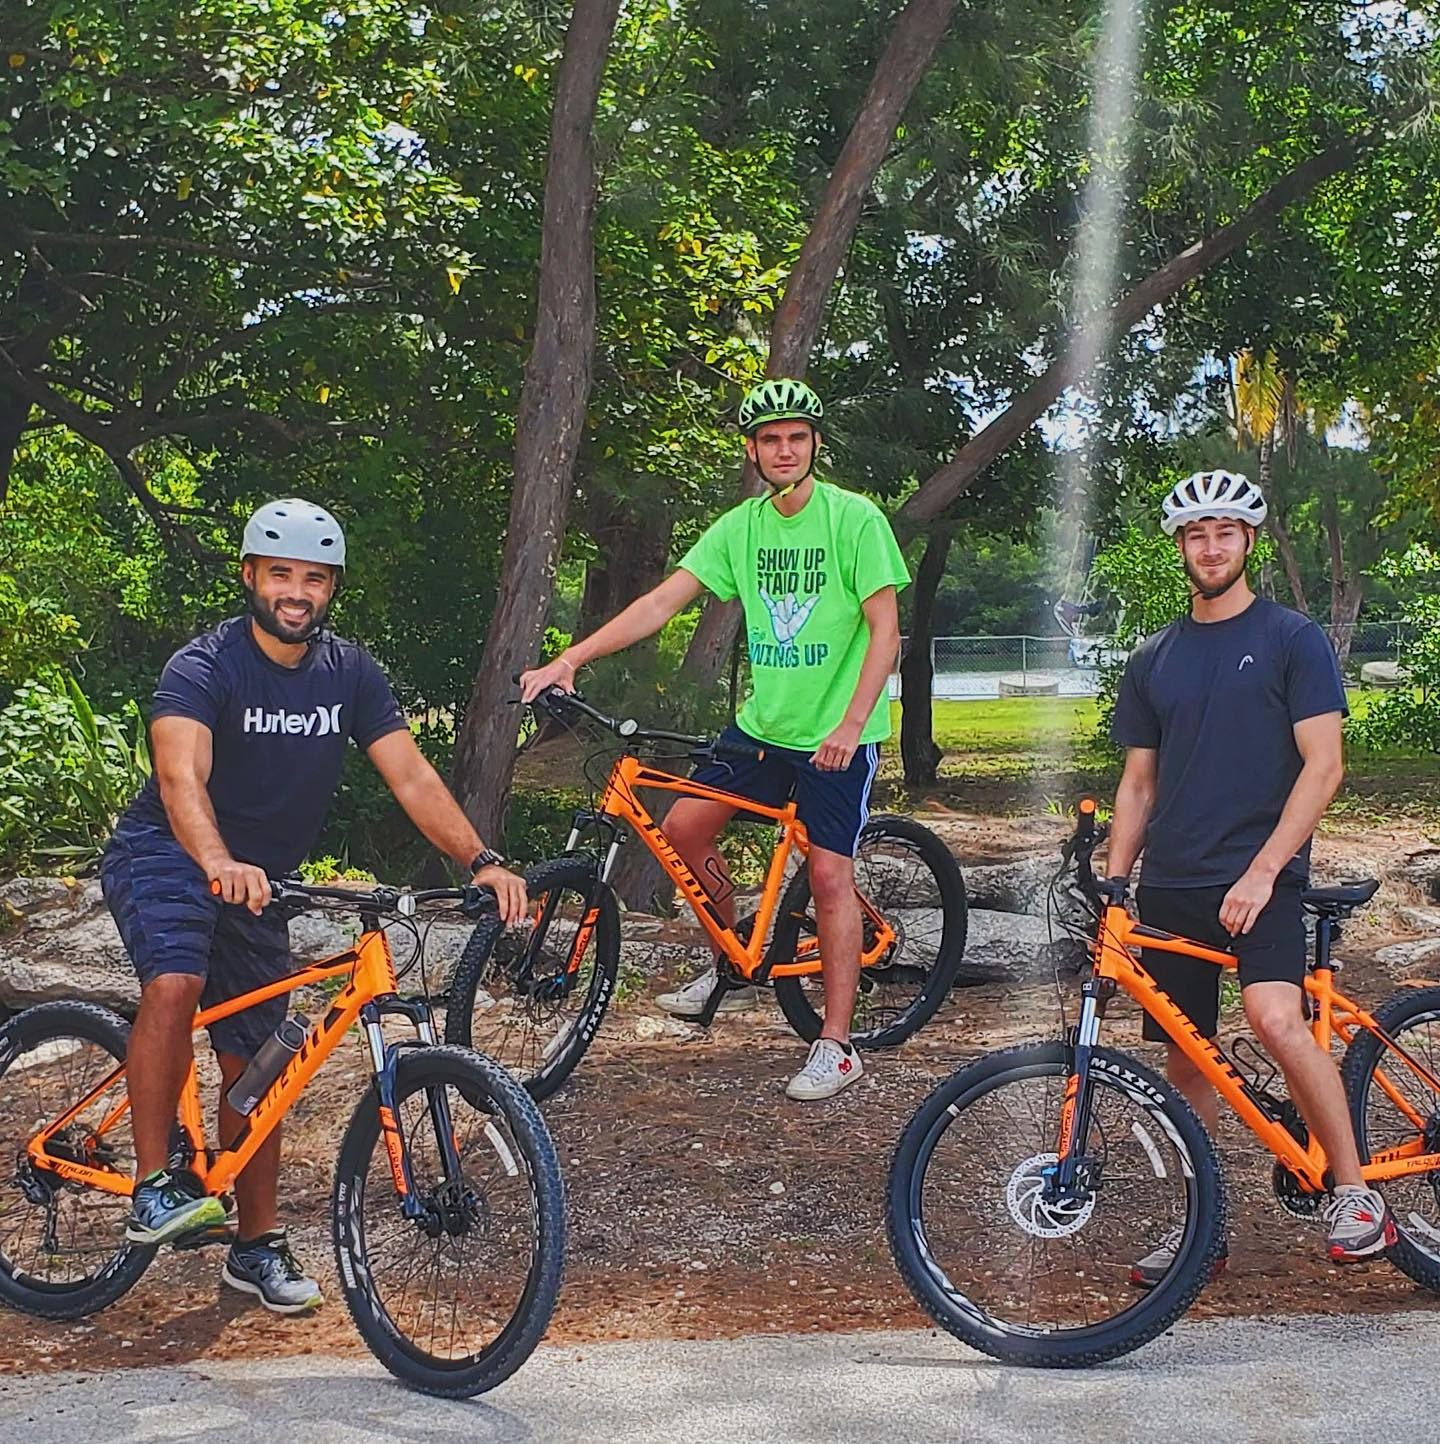 Daily Mountain Bike Rentals - Online Reservations available. Walk-ins are welcomed.